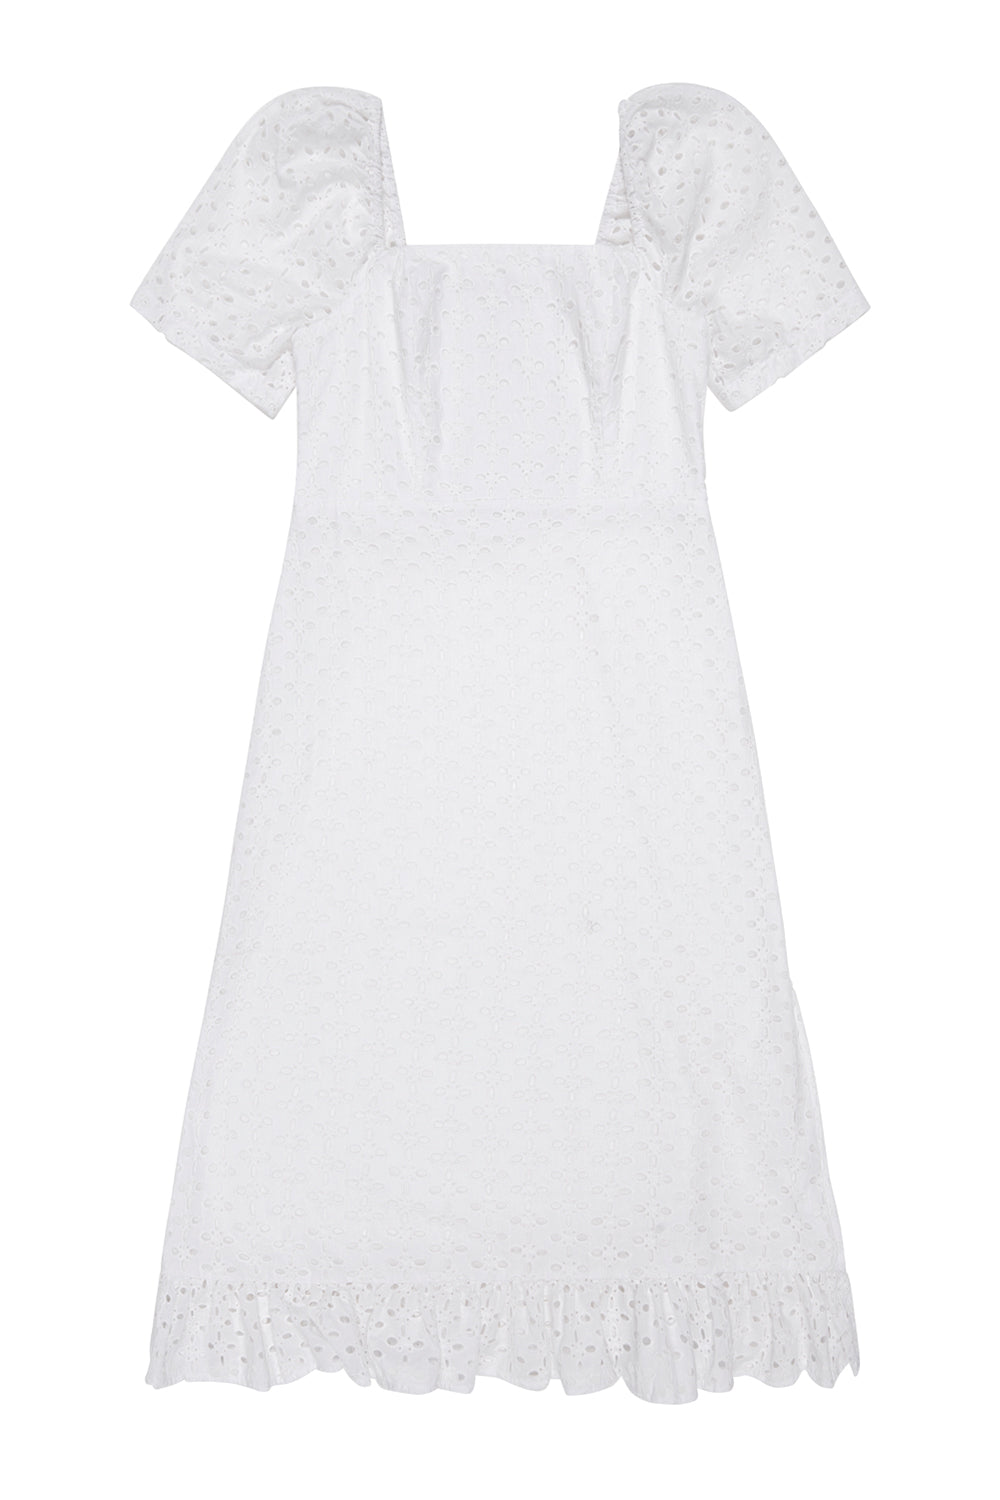 Ruth Cotton Broderie Midi Dress